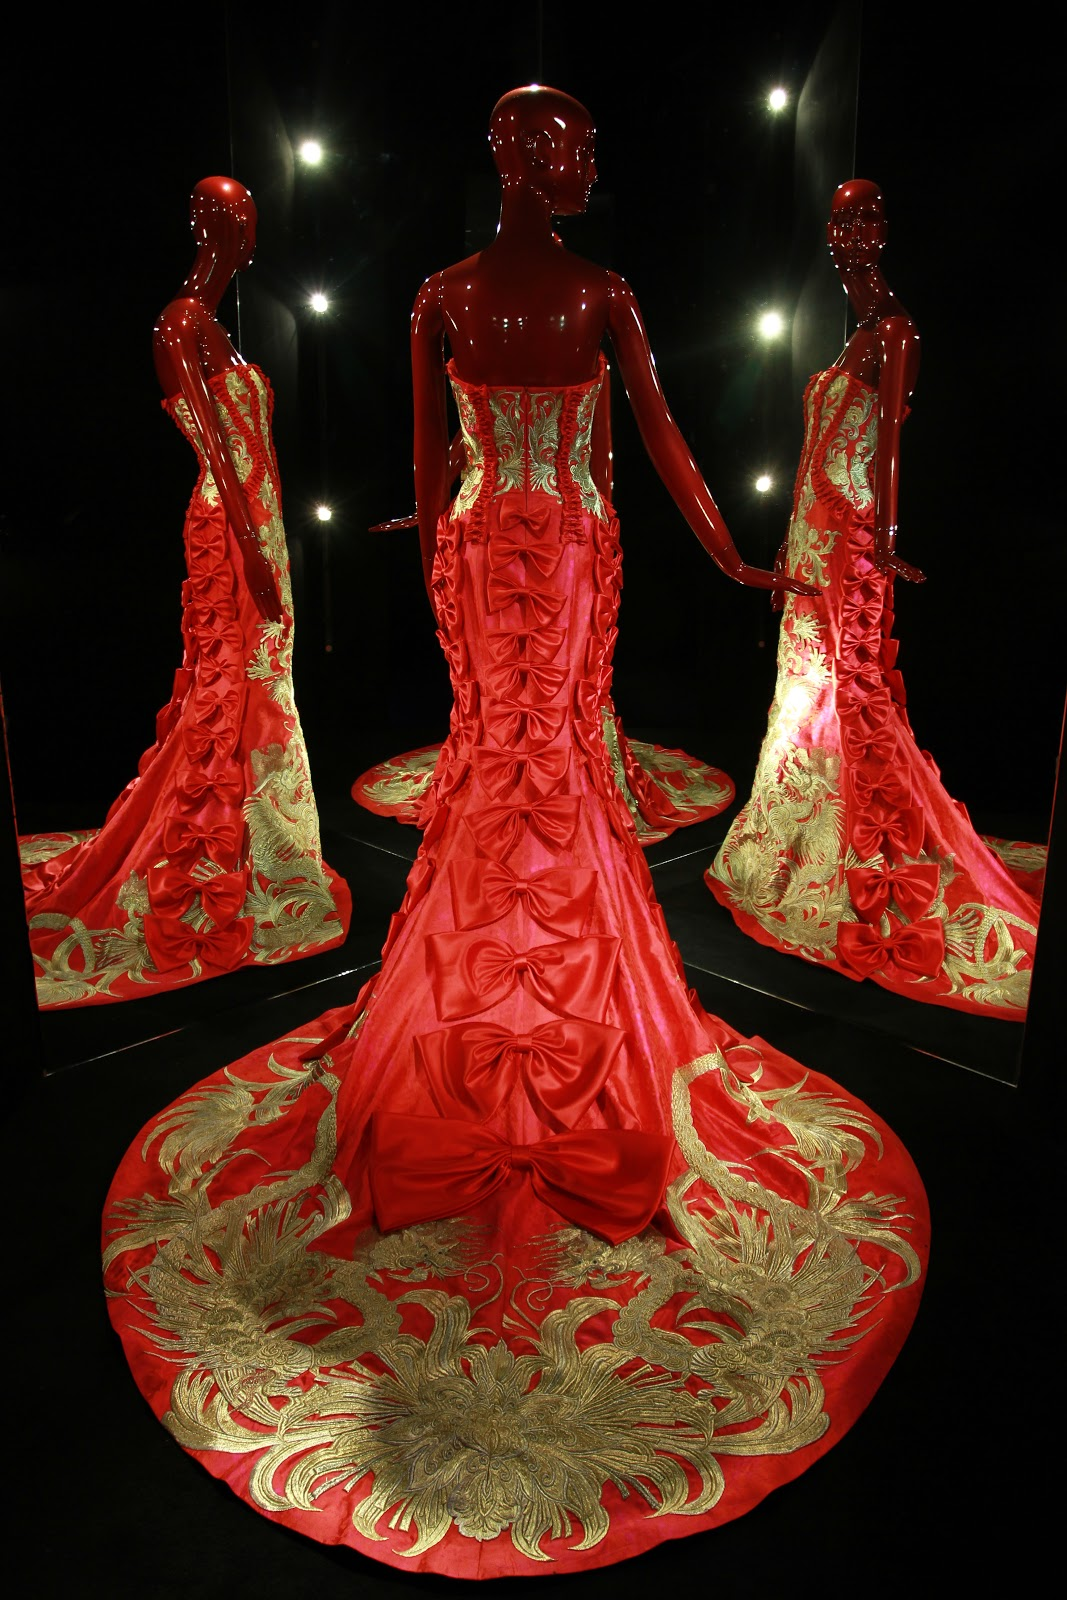 Chinese Wedding Dress 74 Fabulous The collection is a